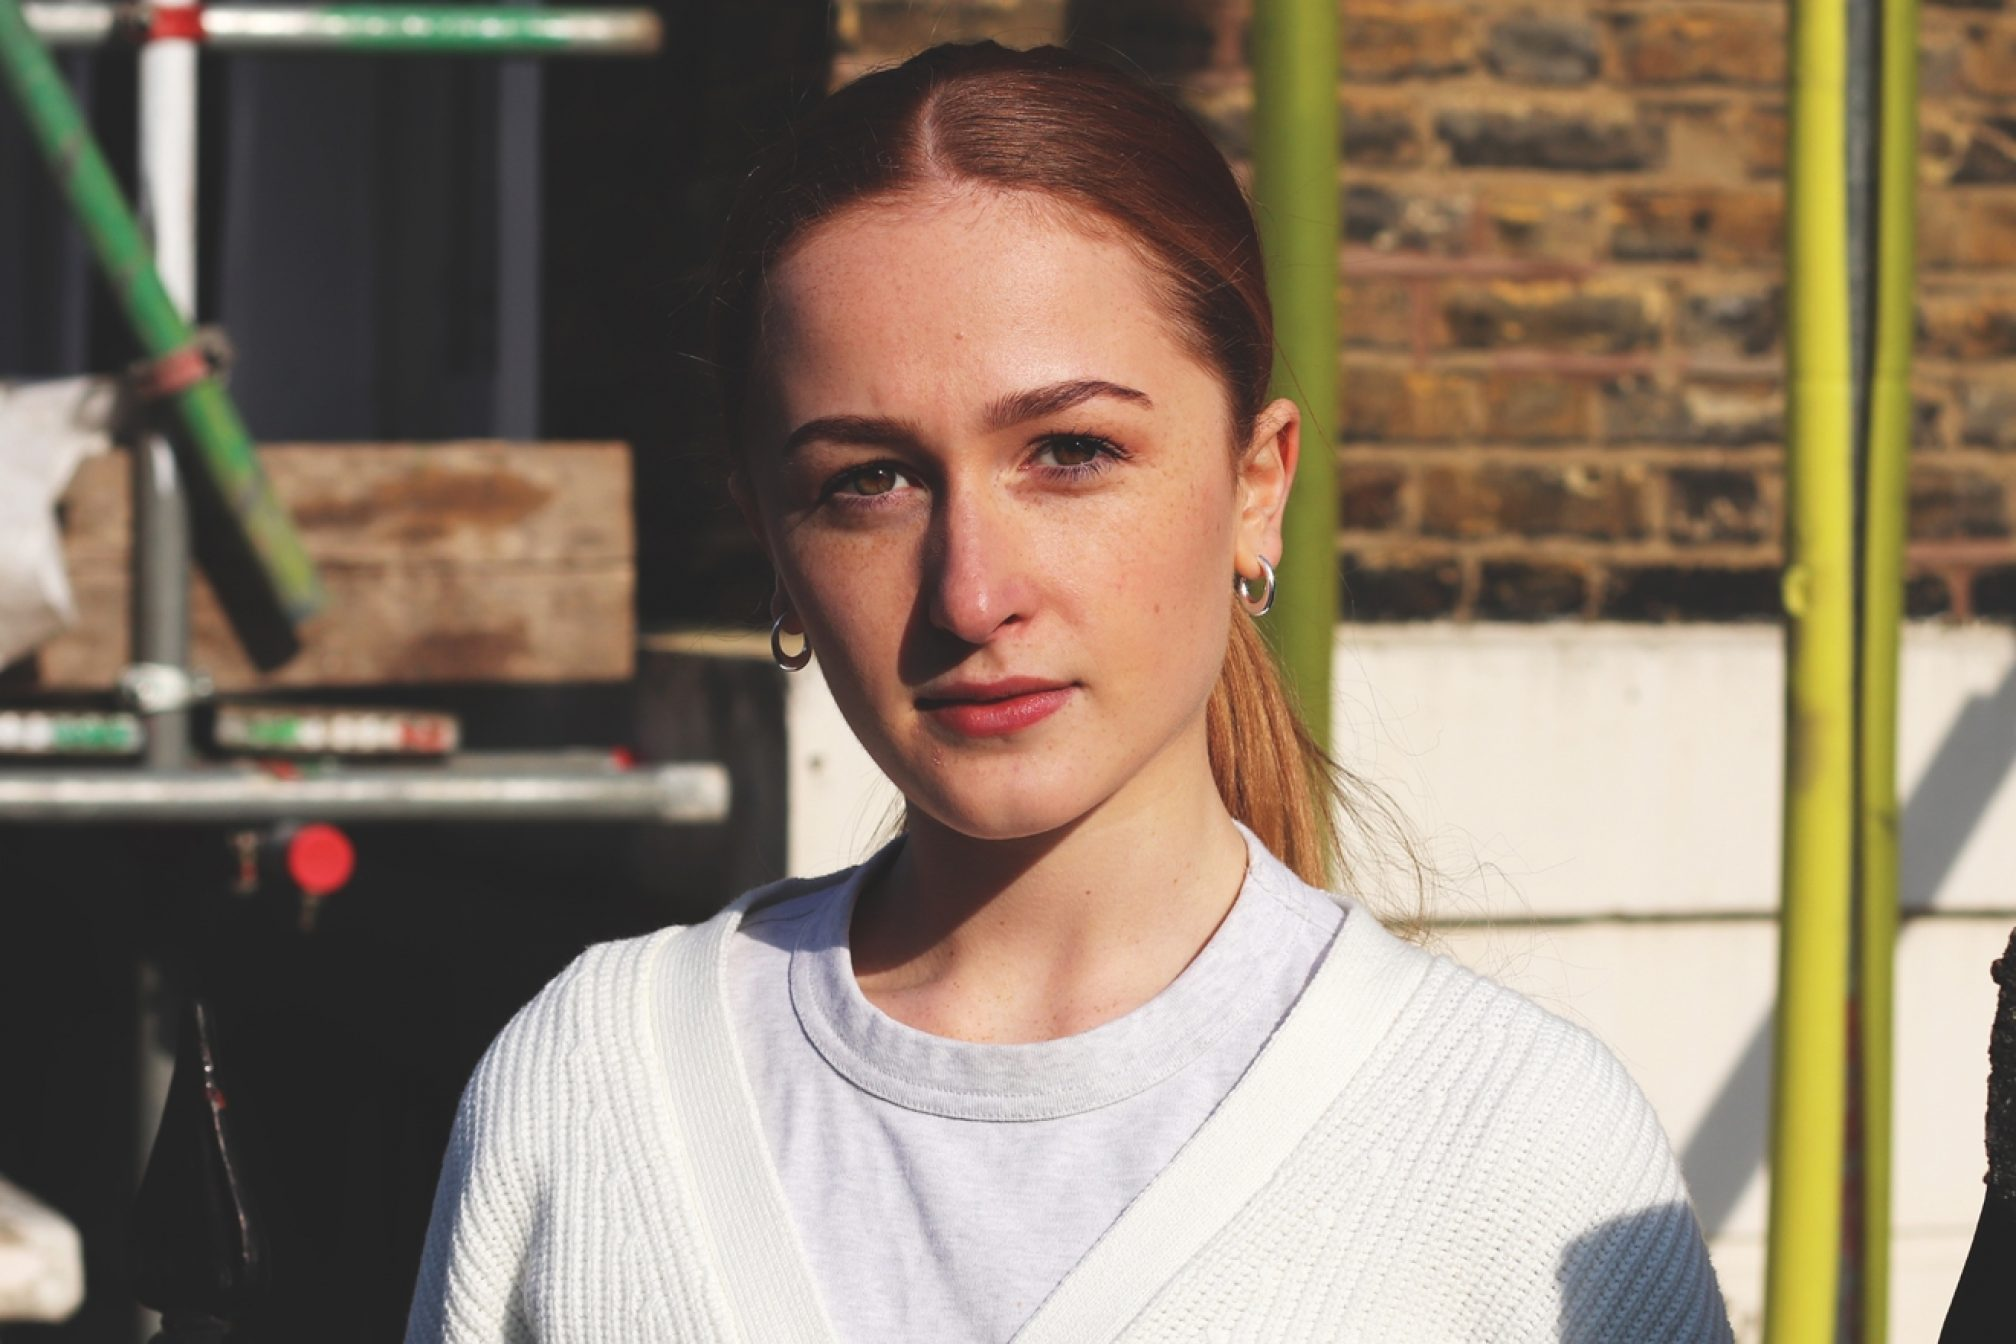 GET TO KNOW IMOGEN, THE FAST-RISING TECHNO ARTIST WHO'S PROVING AGE IS JUST A NUMBER